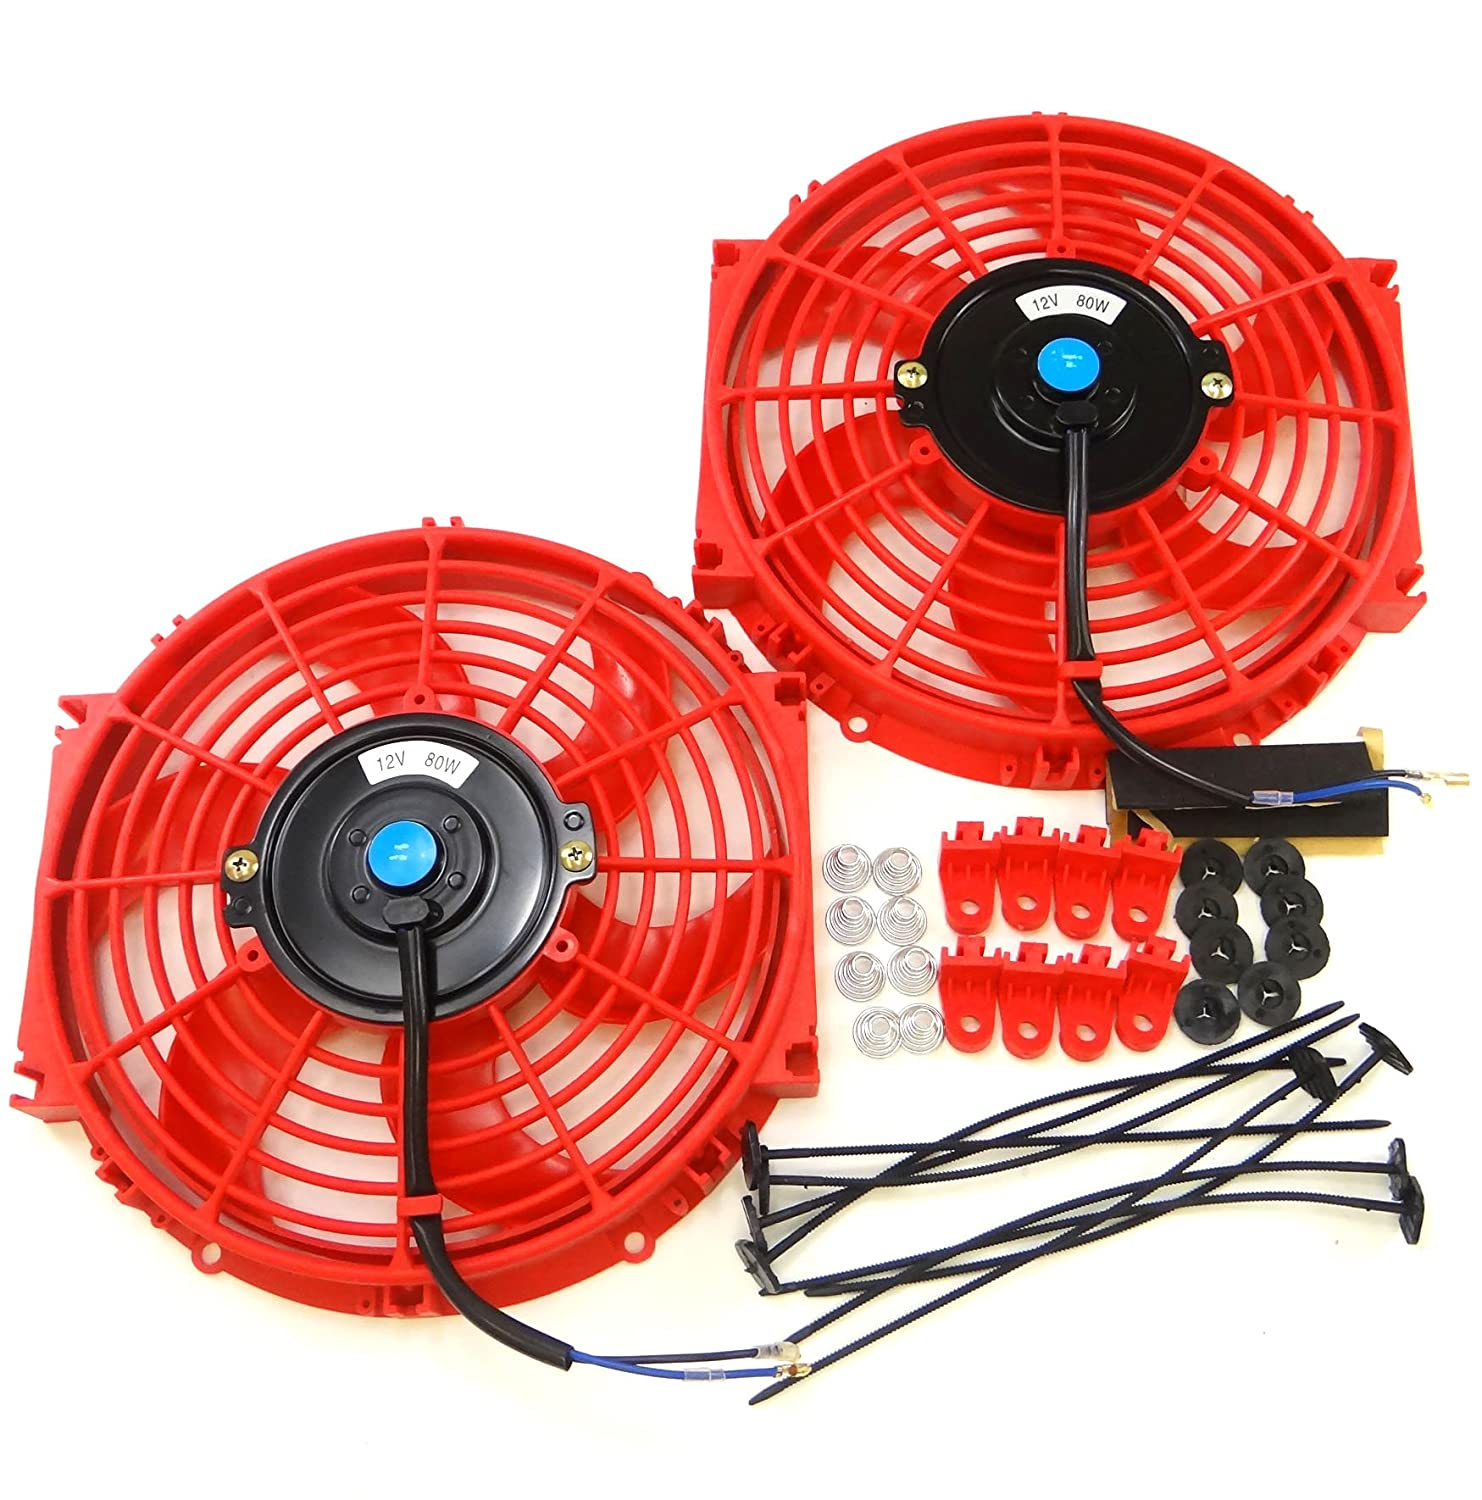 Set of 2 Universal 14 inch 12 Volt Slim Fan Push Pull Electric Radiator Cooling Mount Kit Maxon Auto Corp.